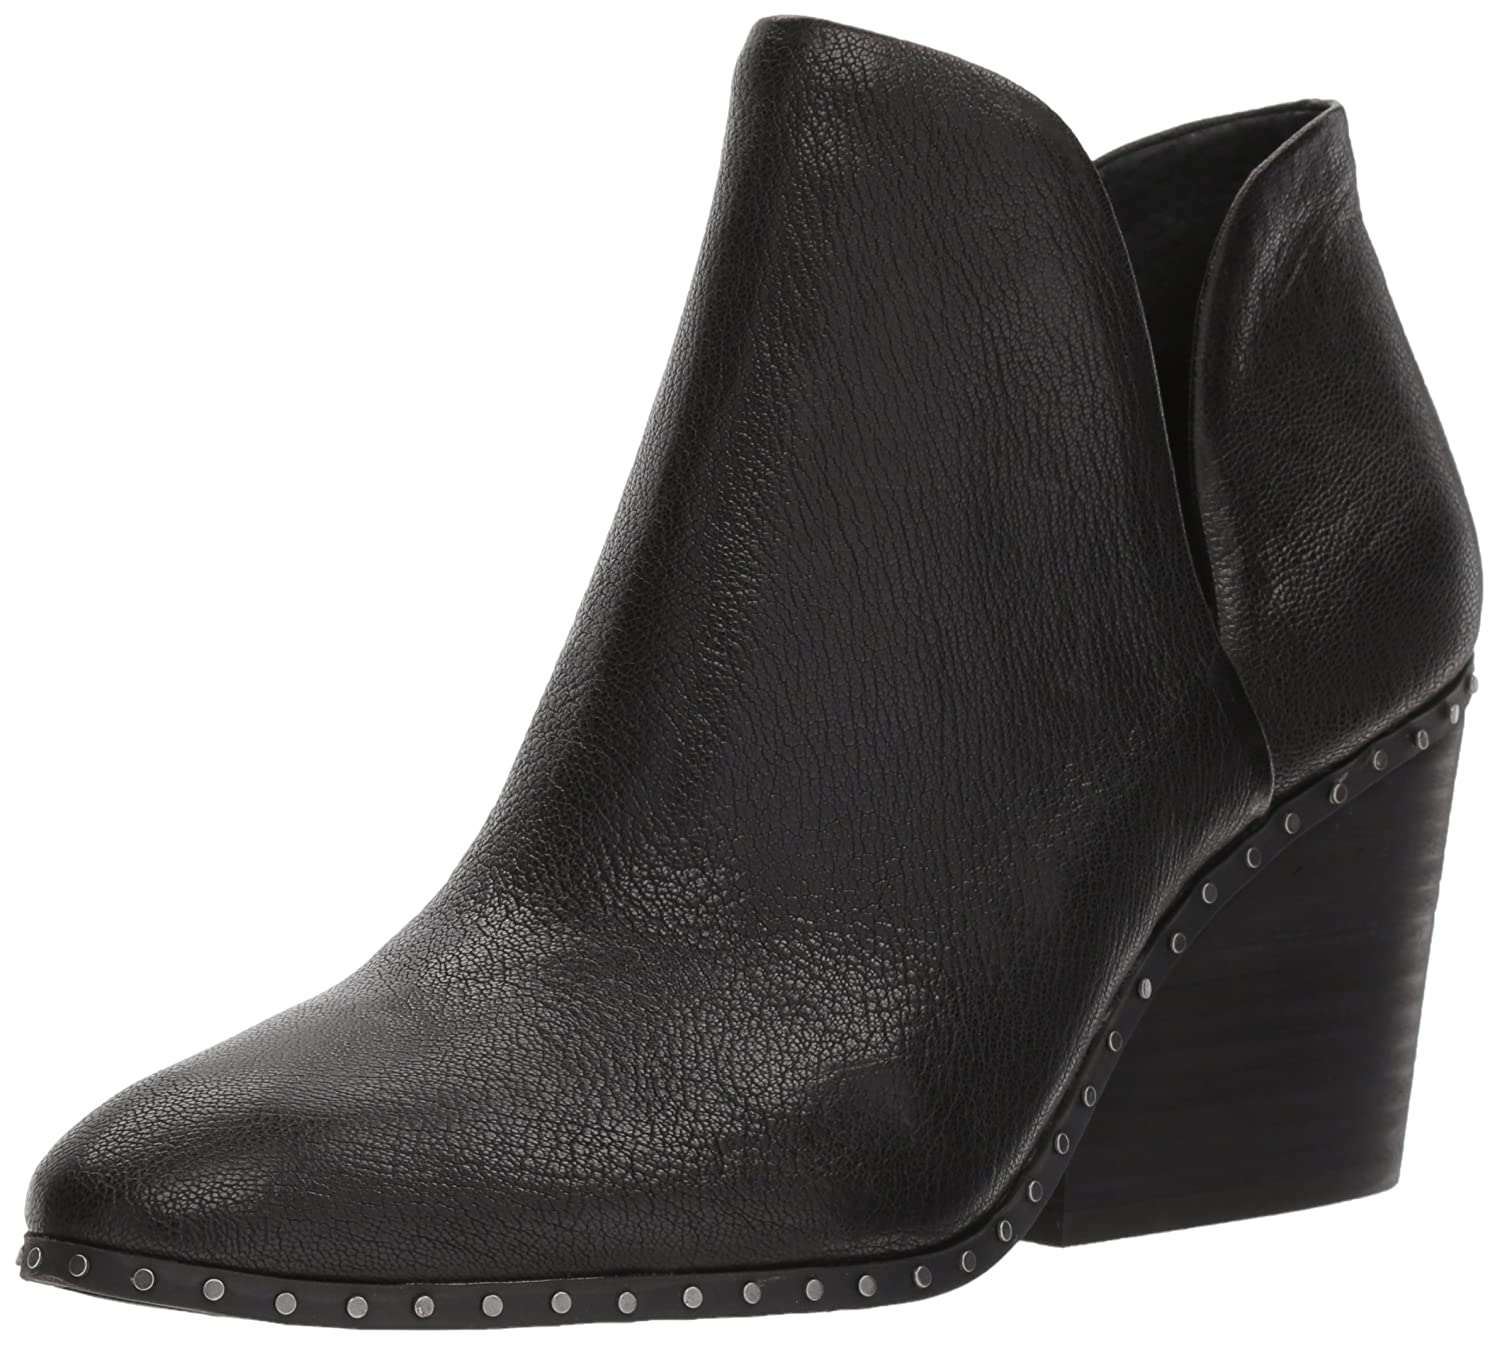 Lucky Brand Women's LEZZLEE2 Ankle Boot B0748NY414 9 B(M) US|Black